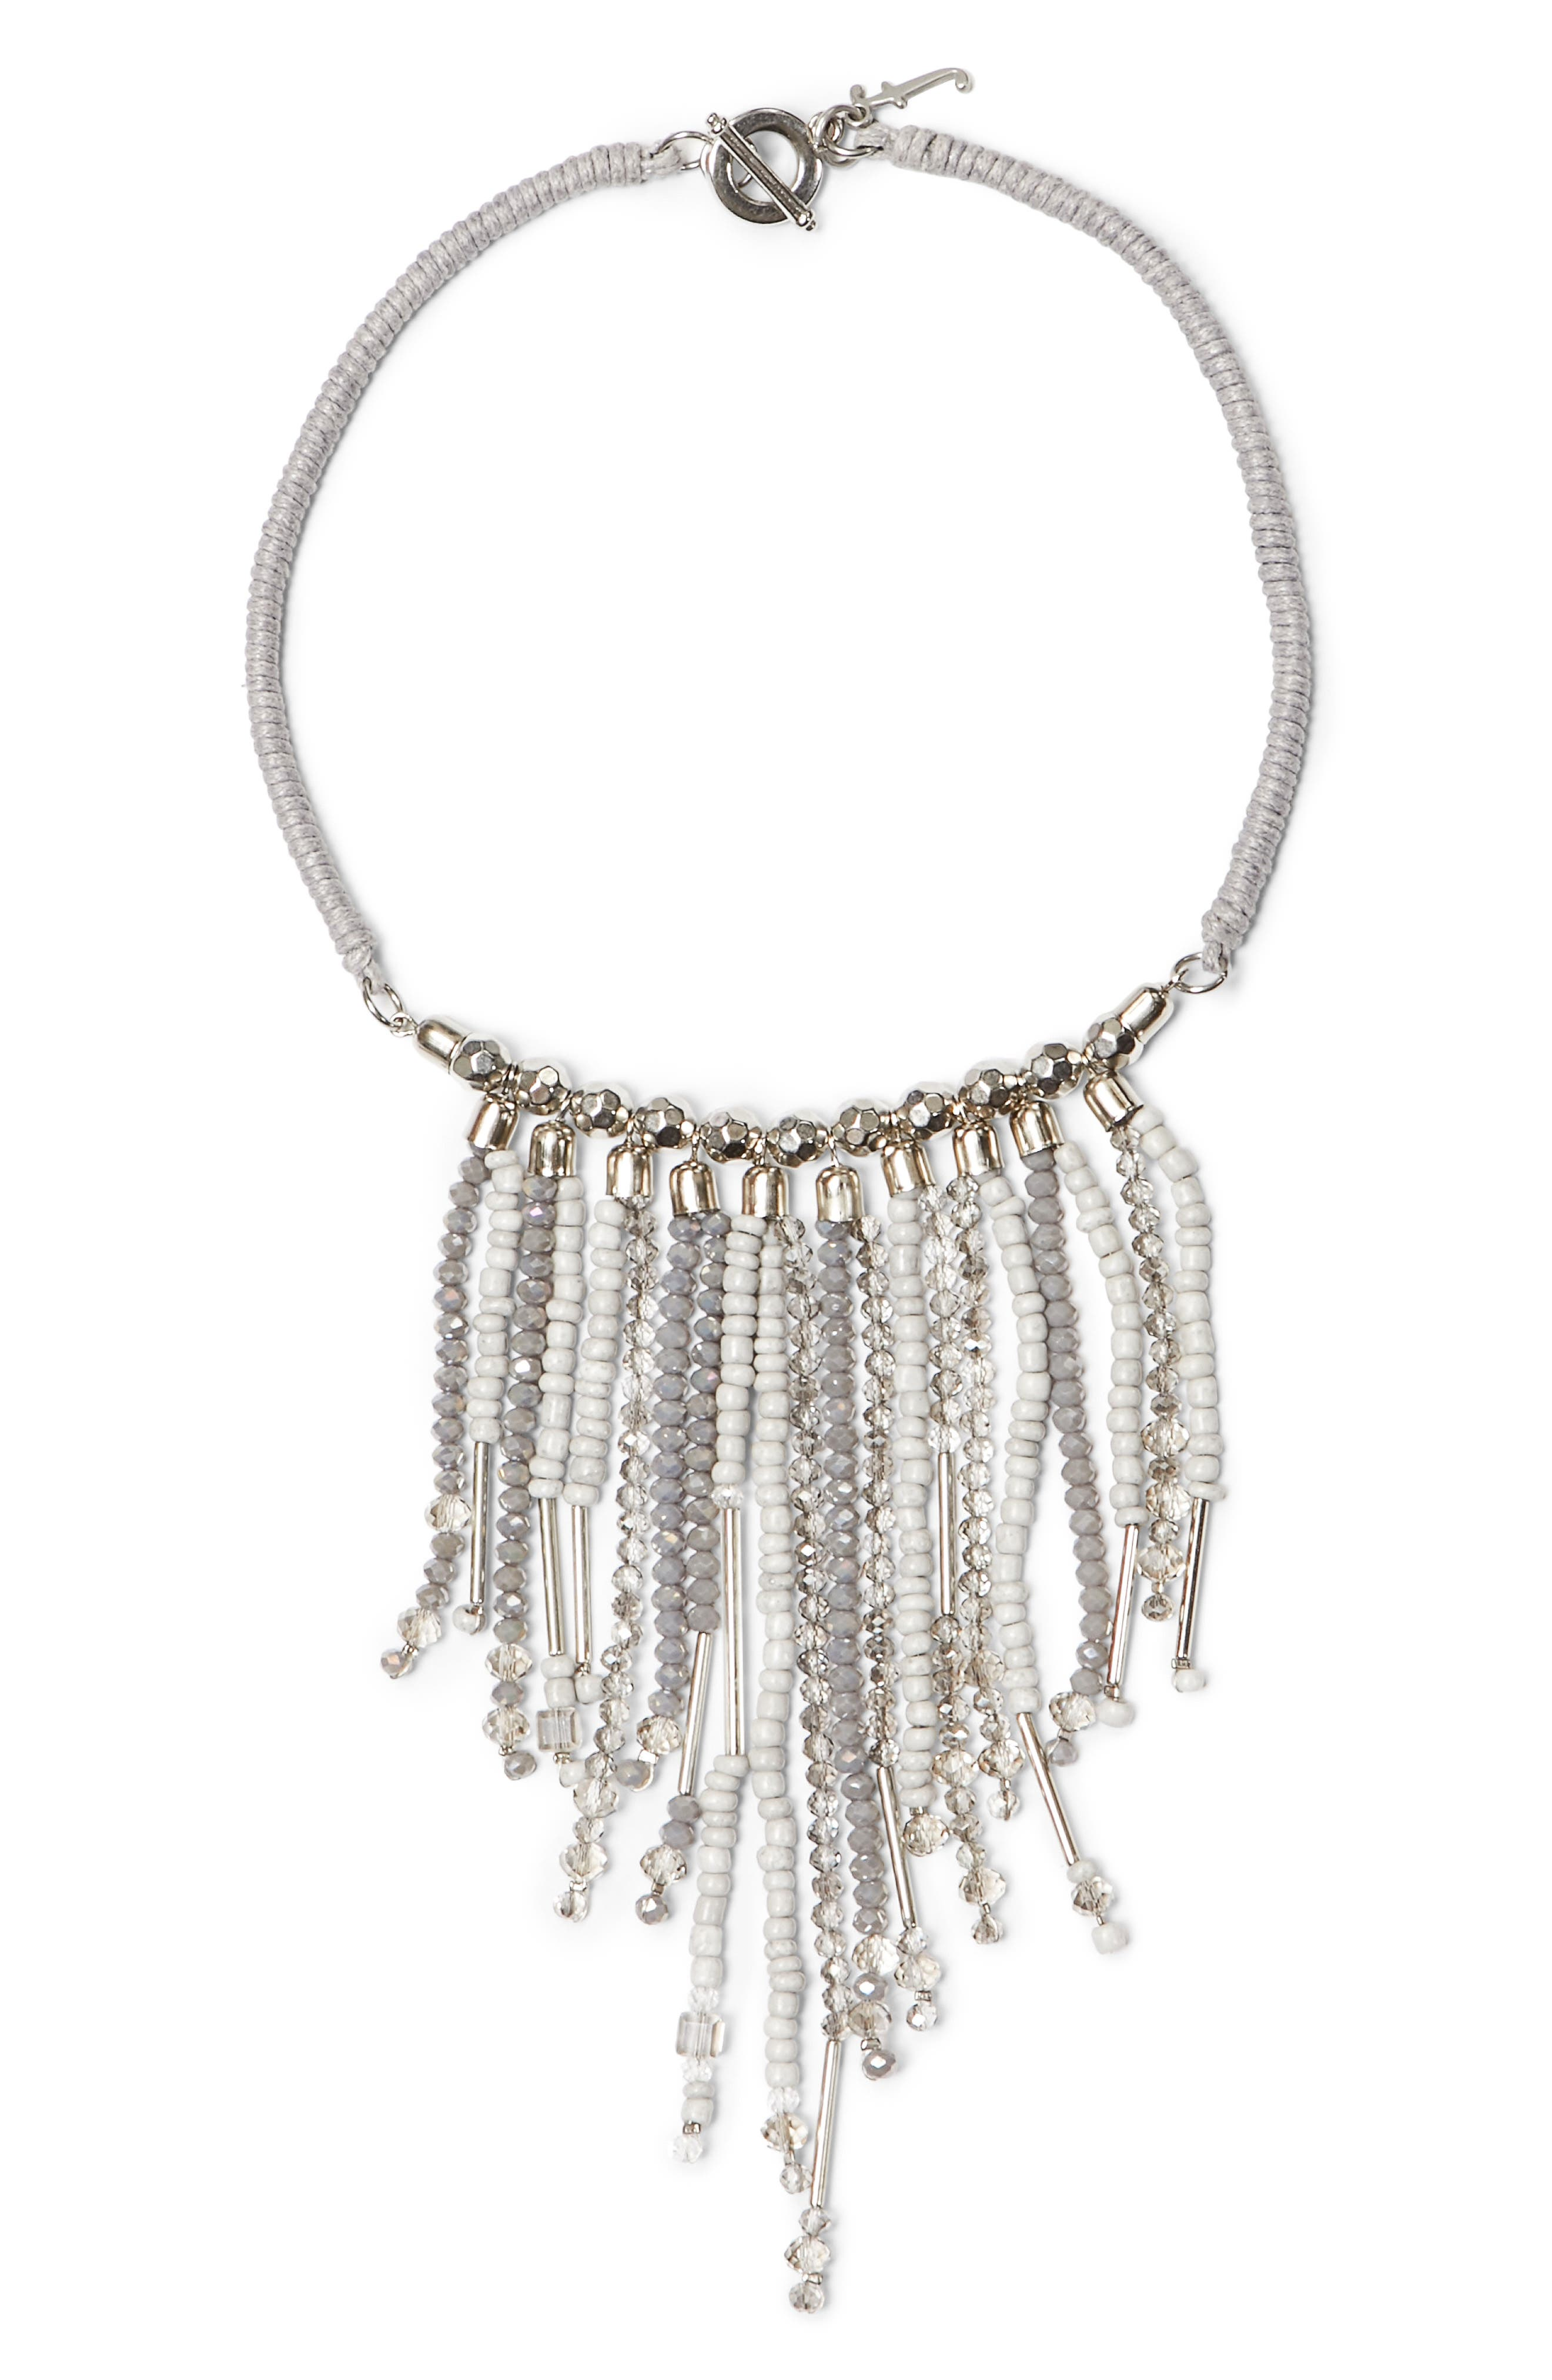 Beaded Fringe Necklace,                             Main thumbnail 1, color,                             Silver Grey Multi